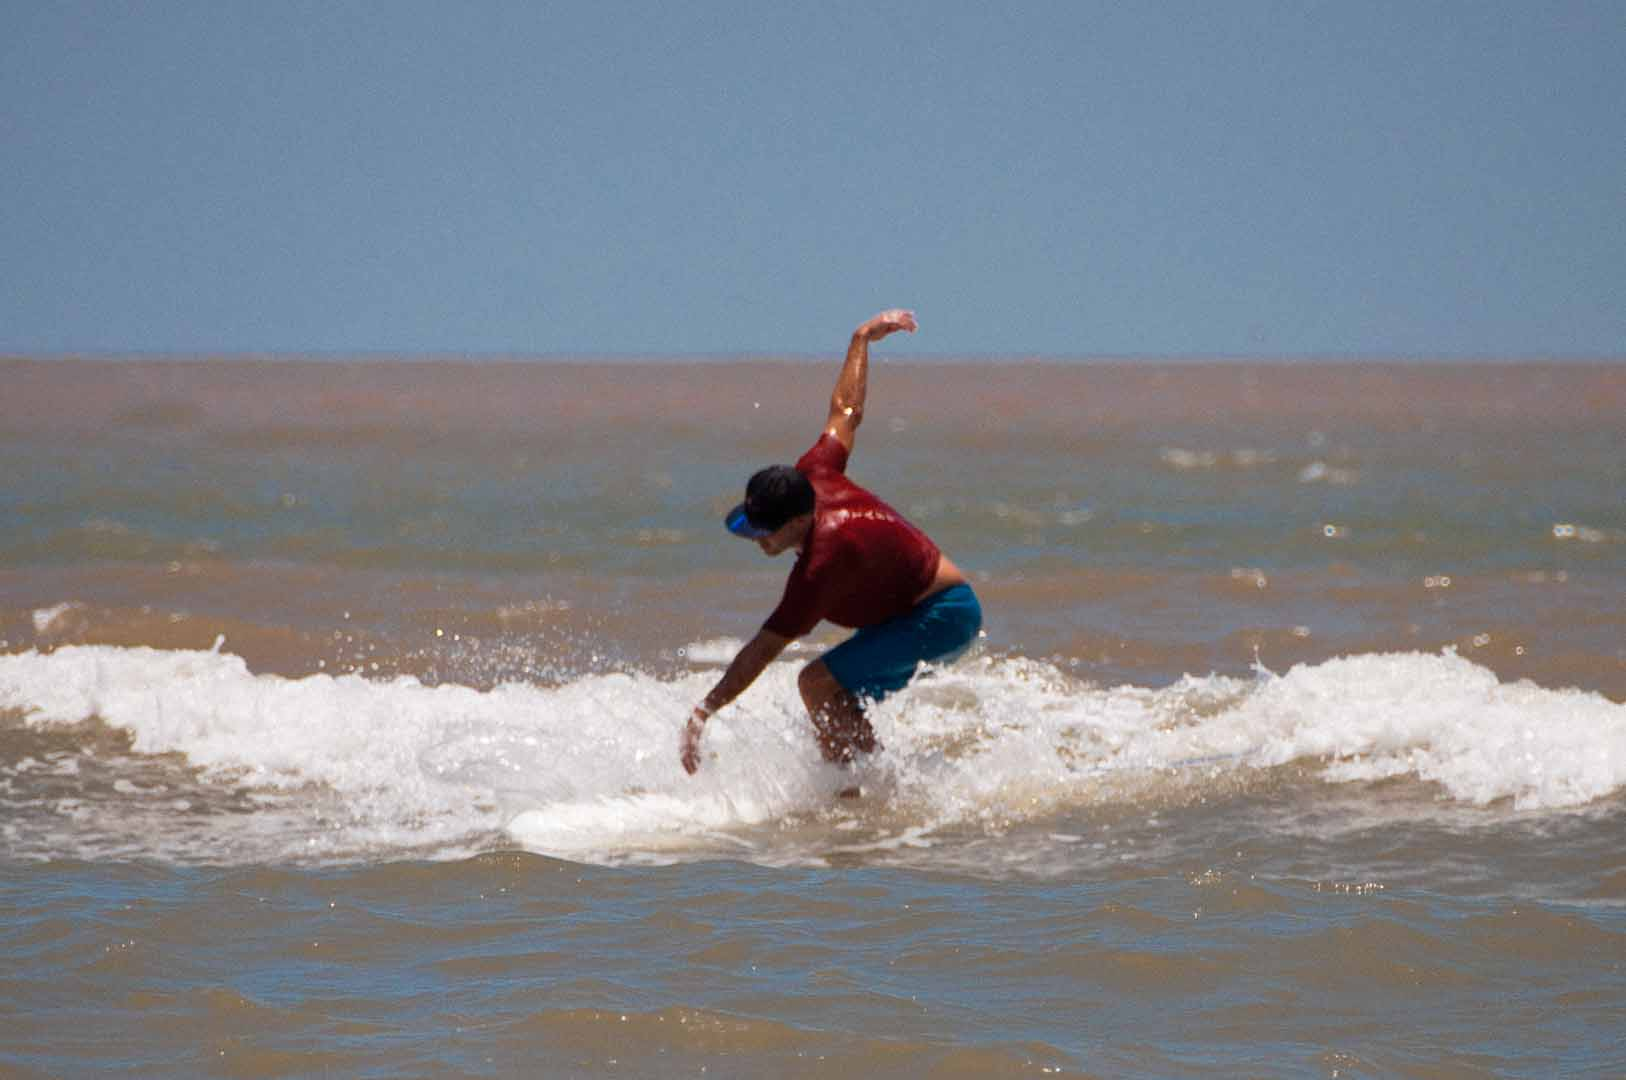 SurfsideLateJune_20150627_318